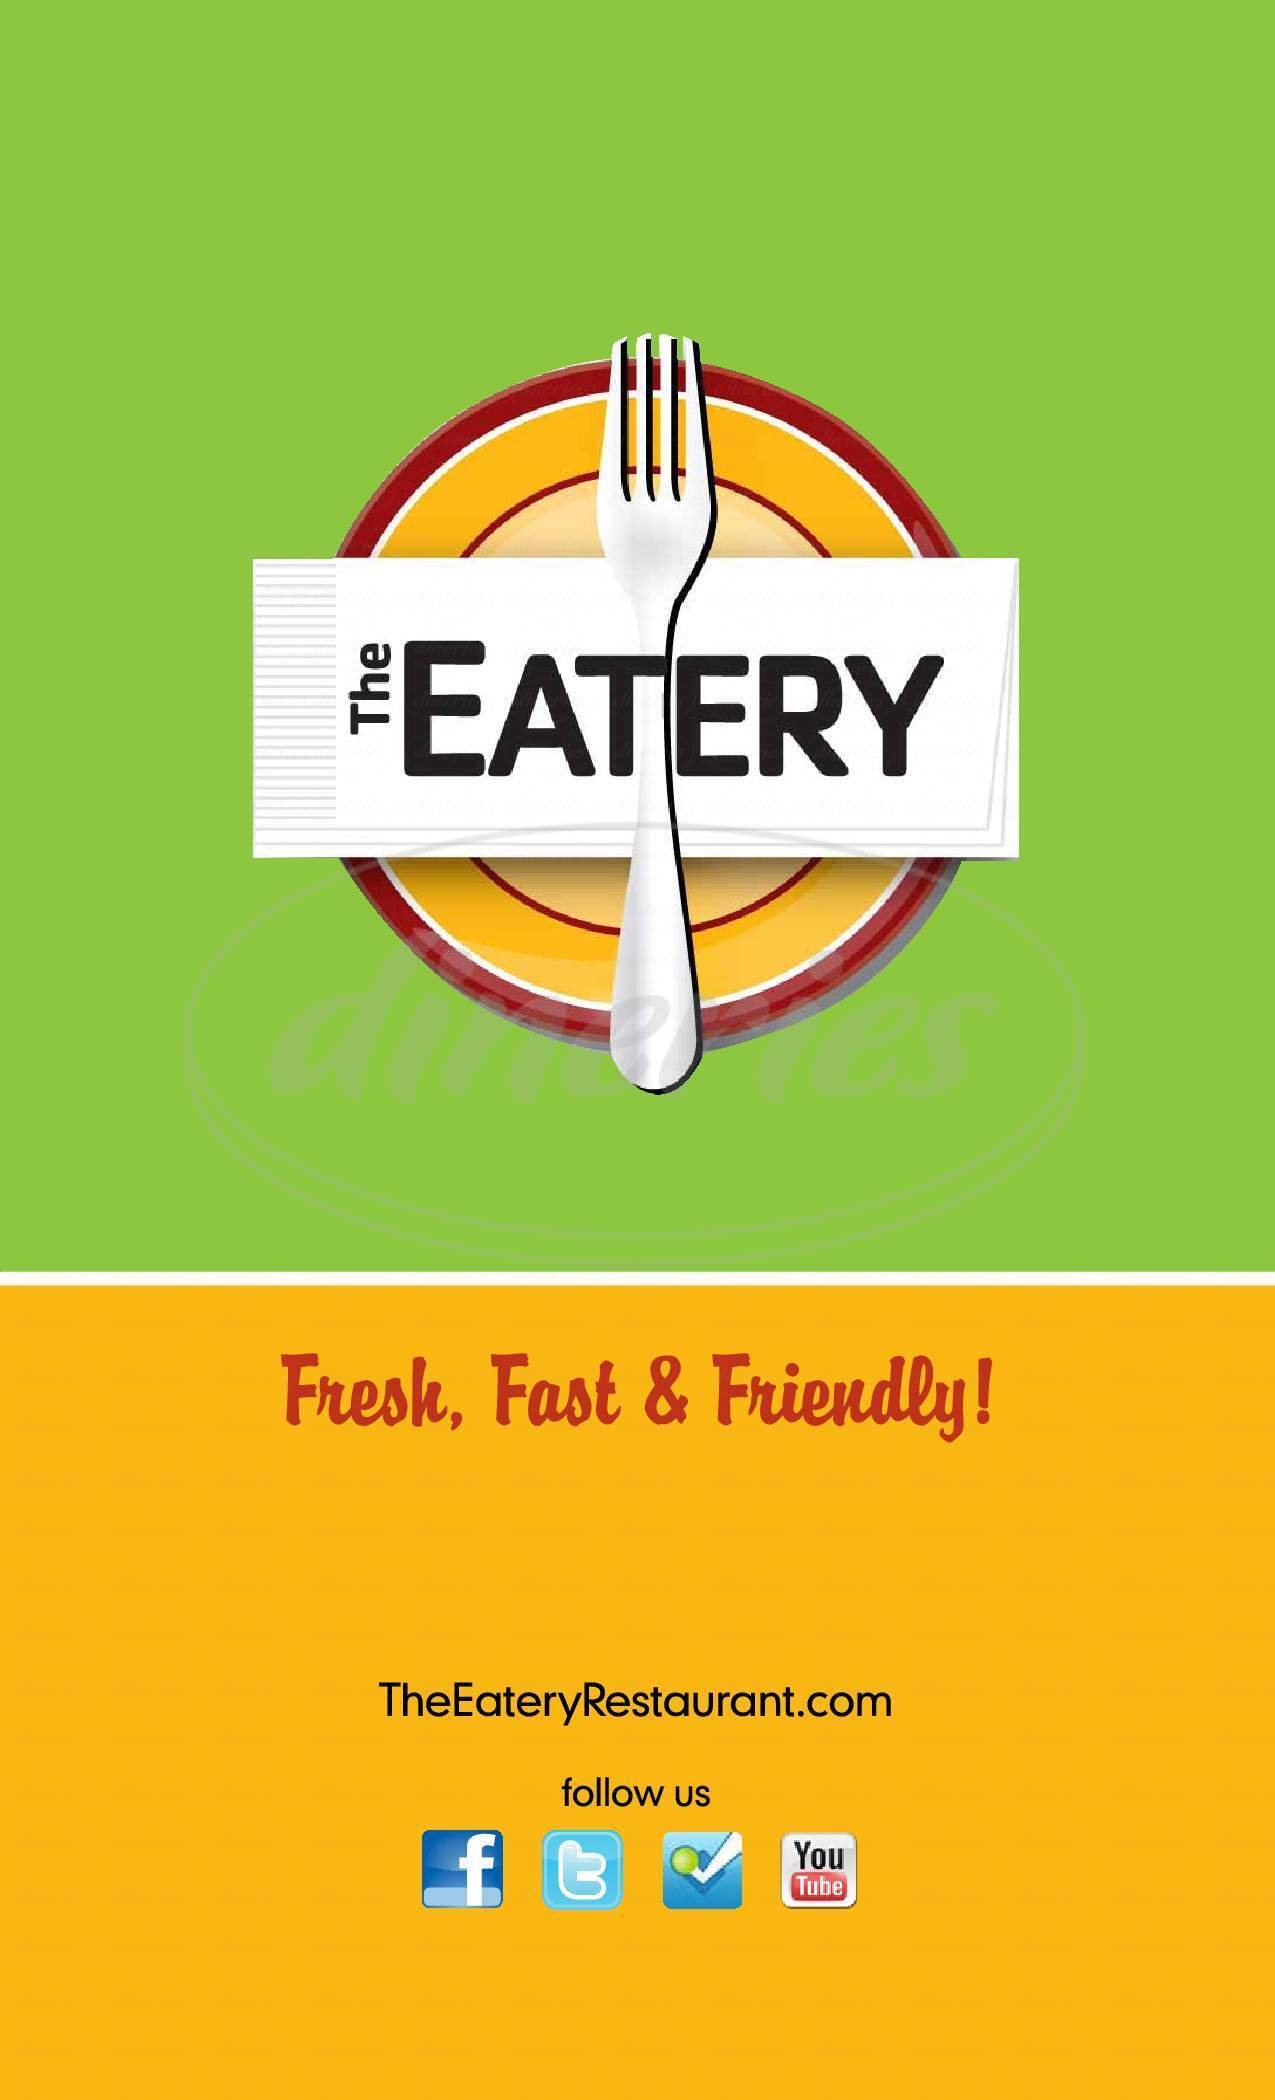 menu for The Eatery